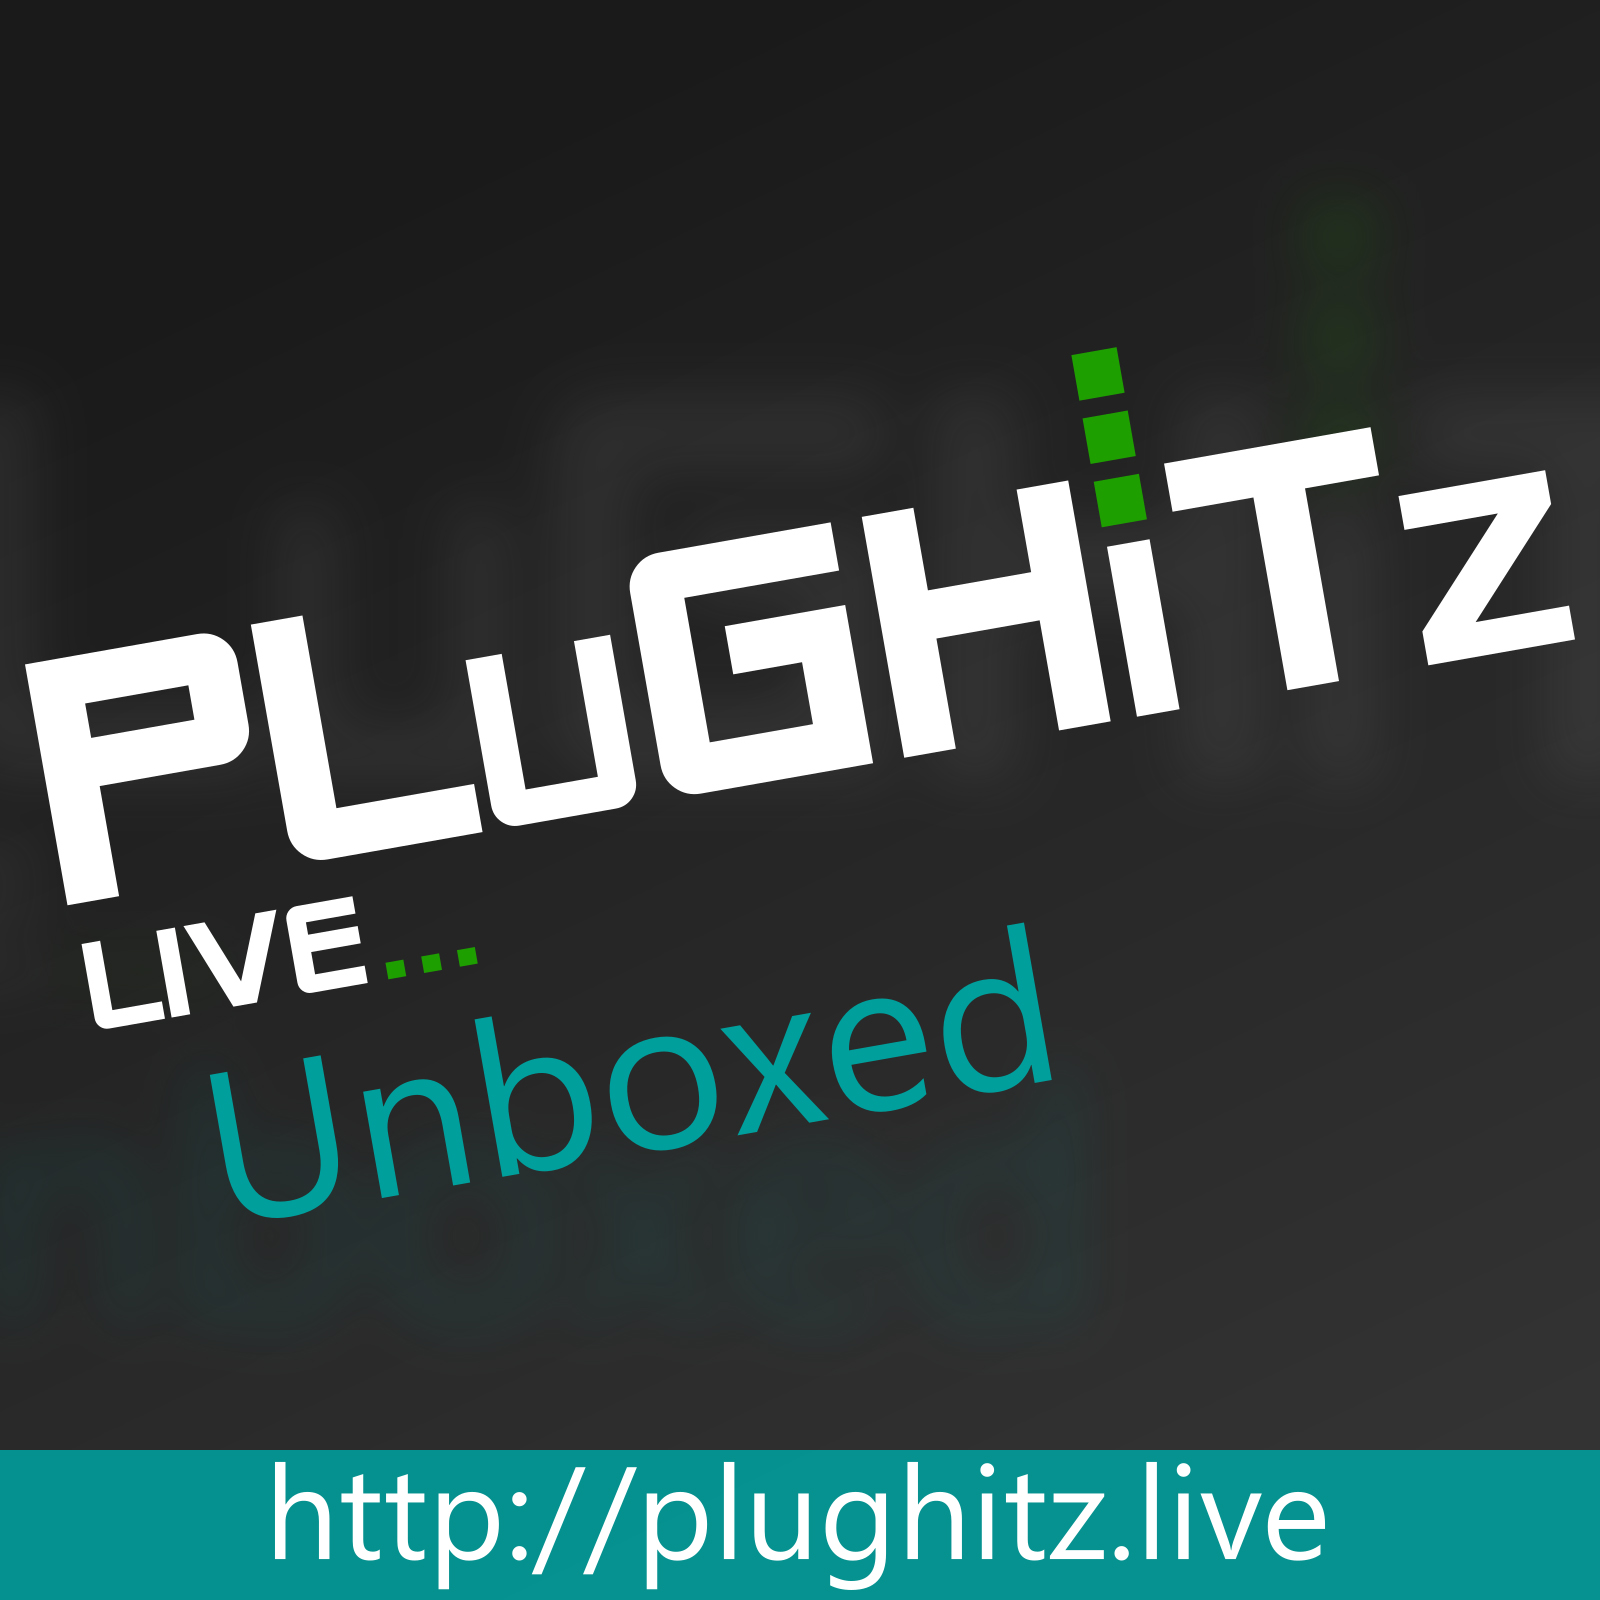 PLuGHiTz Live Unboxed (Video)